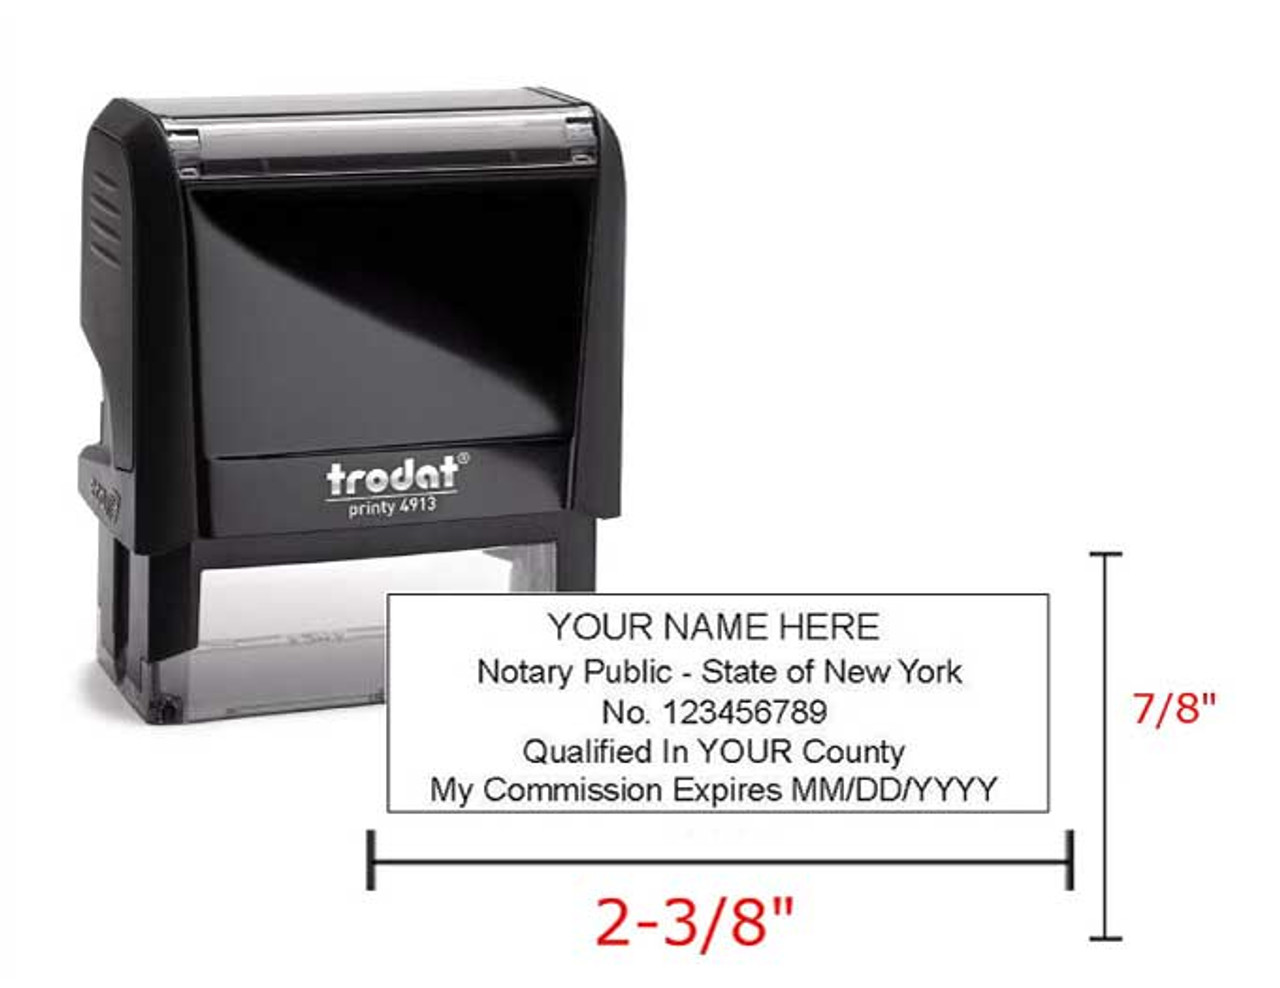 Notary Public Rubber Stamp Printy 4913 7 8 X2 3 8 Self Inking For Easy Use Blue Ink